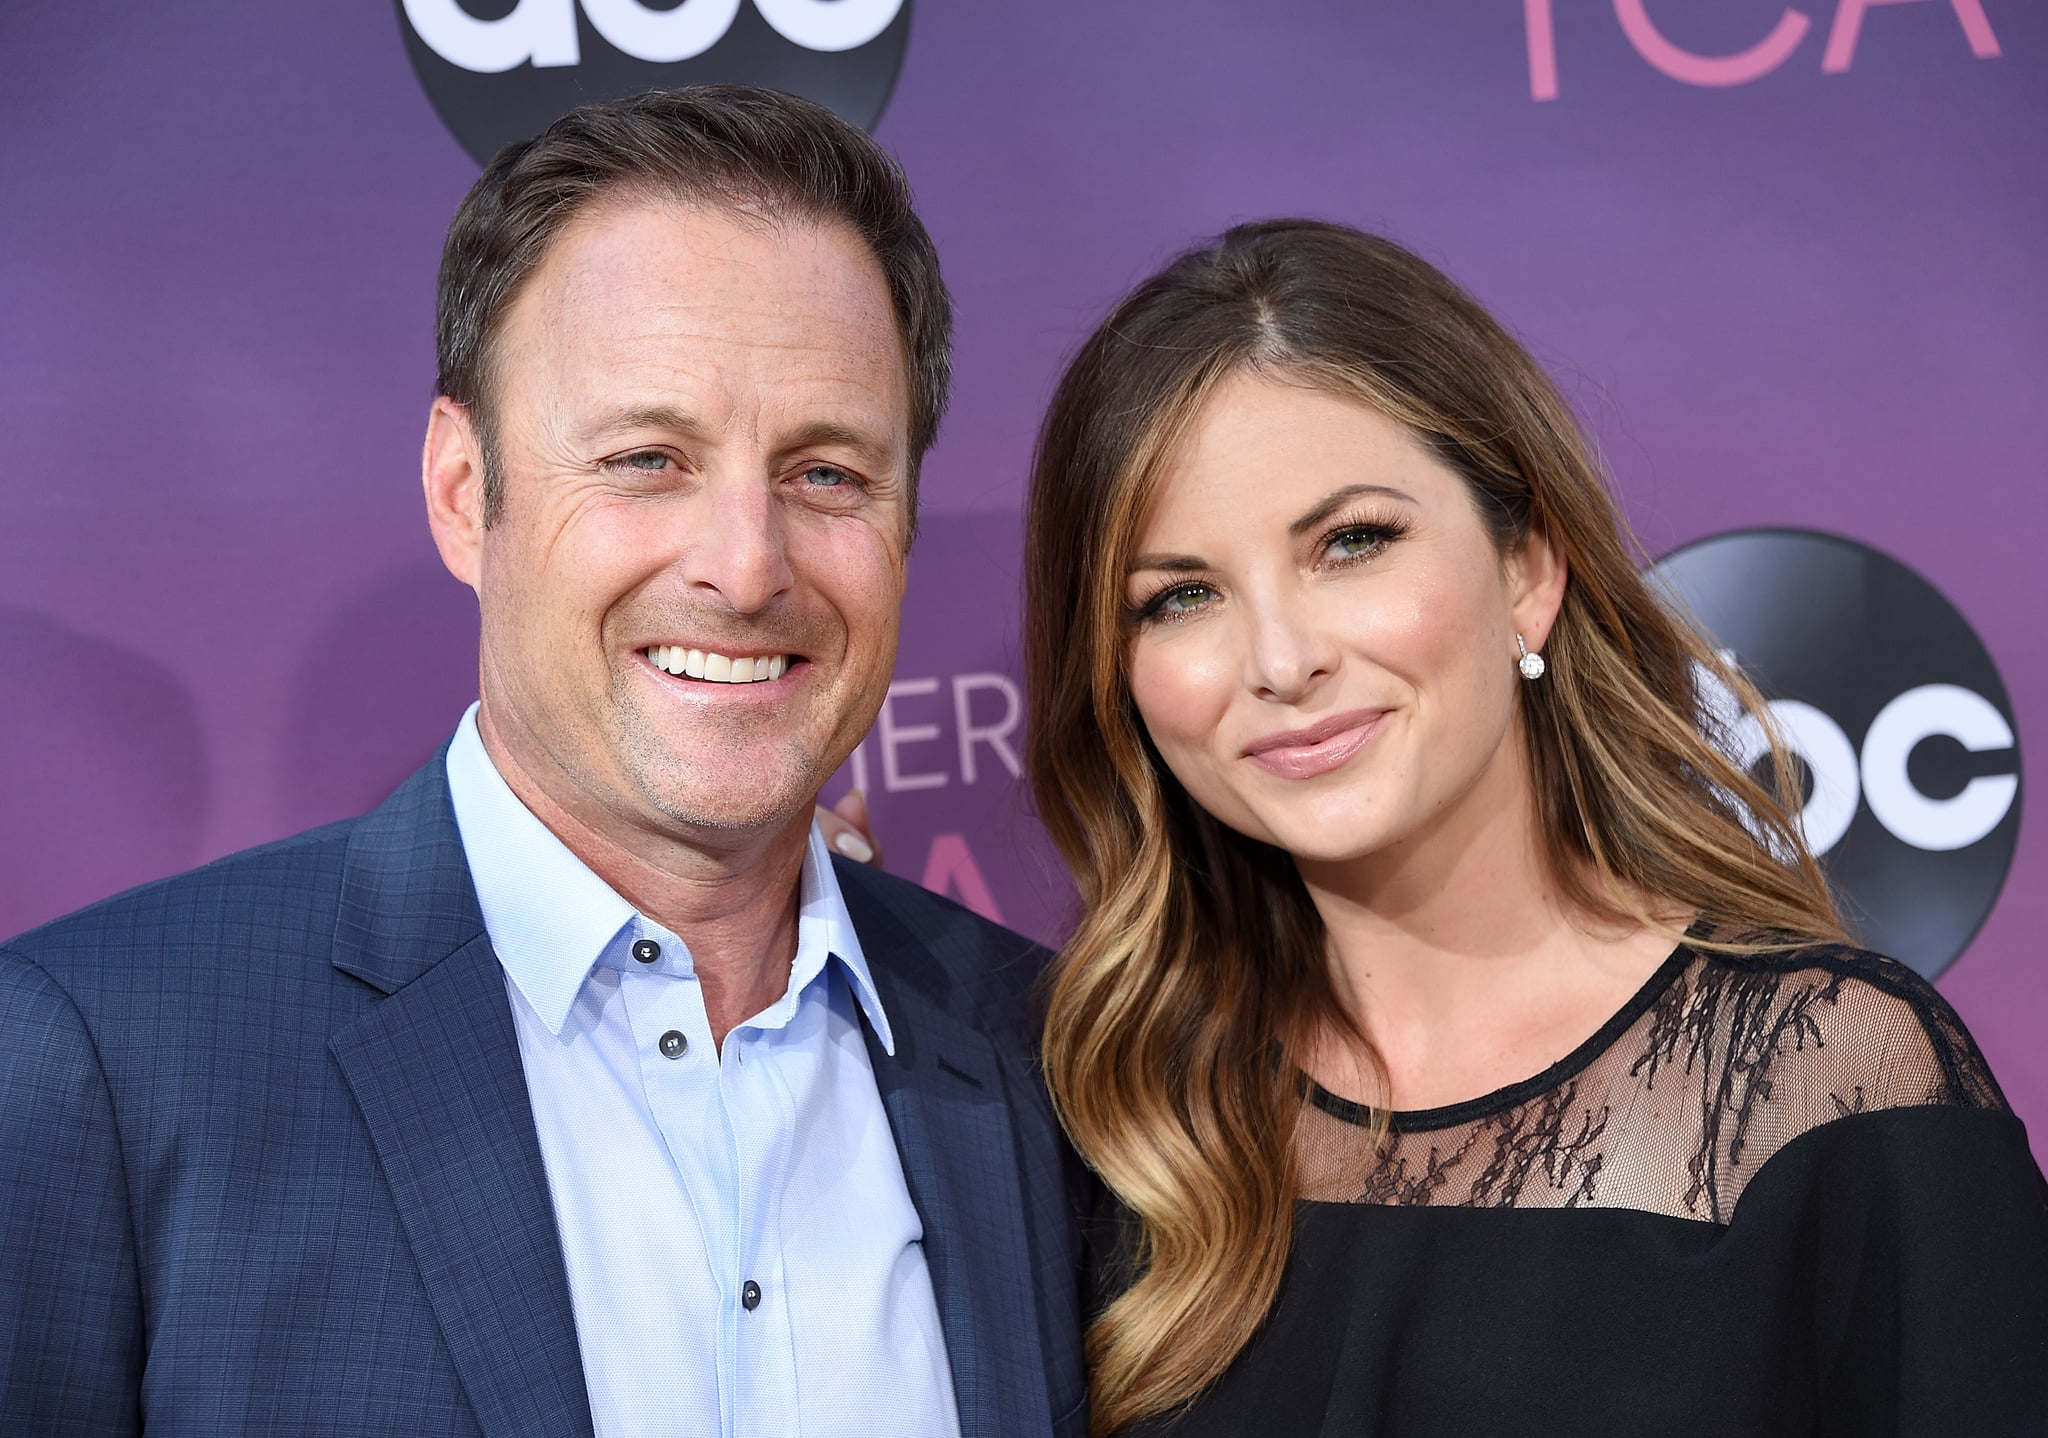 WEST HOLLYWOOD, CA - AUGUST 05:  Chris Harrison and Lauren Zima arrive at ABC's TCA Summer Press Tour Carpet Event on August 5, 2019 in West Hollywood, California.  (Photo by Gregg DeGuire/WireImage)